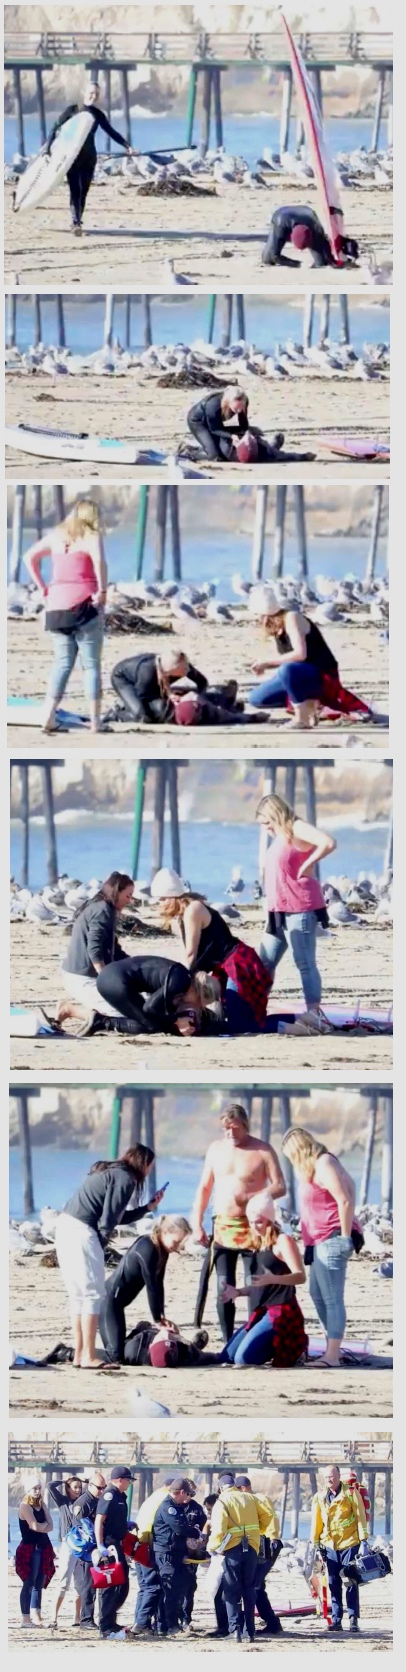 CPR+on+beach+-+sequence+from+video.jpg